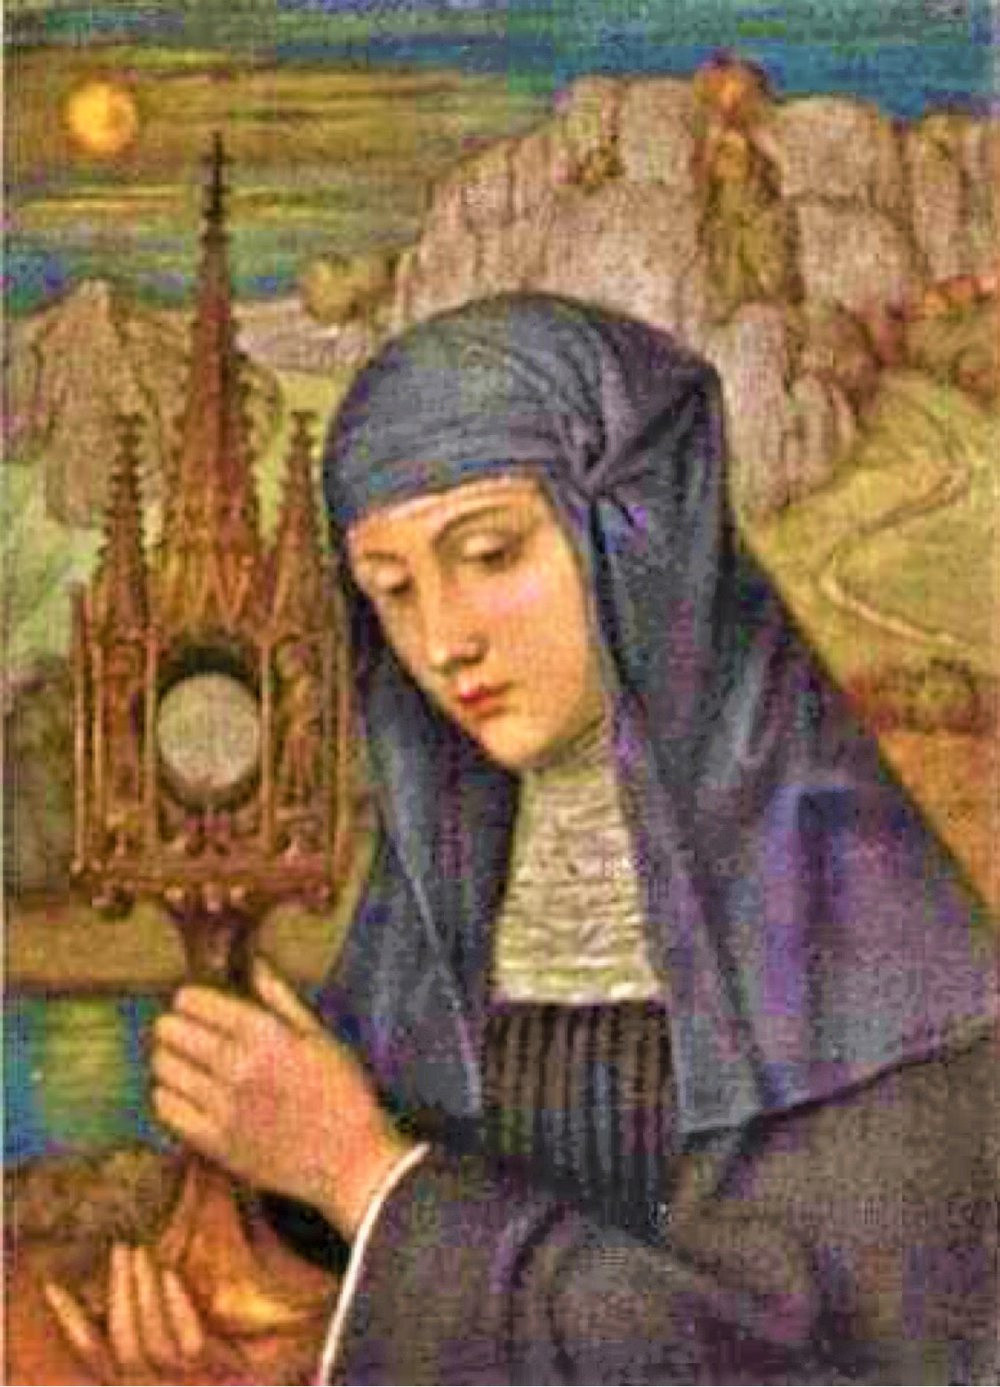 St Juliana of Liege